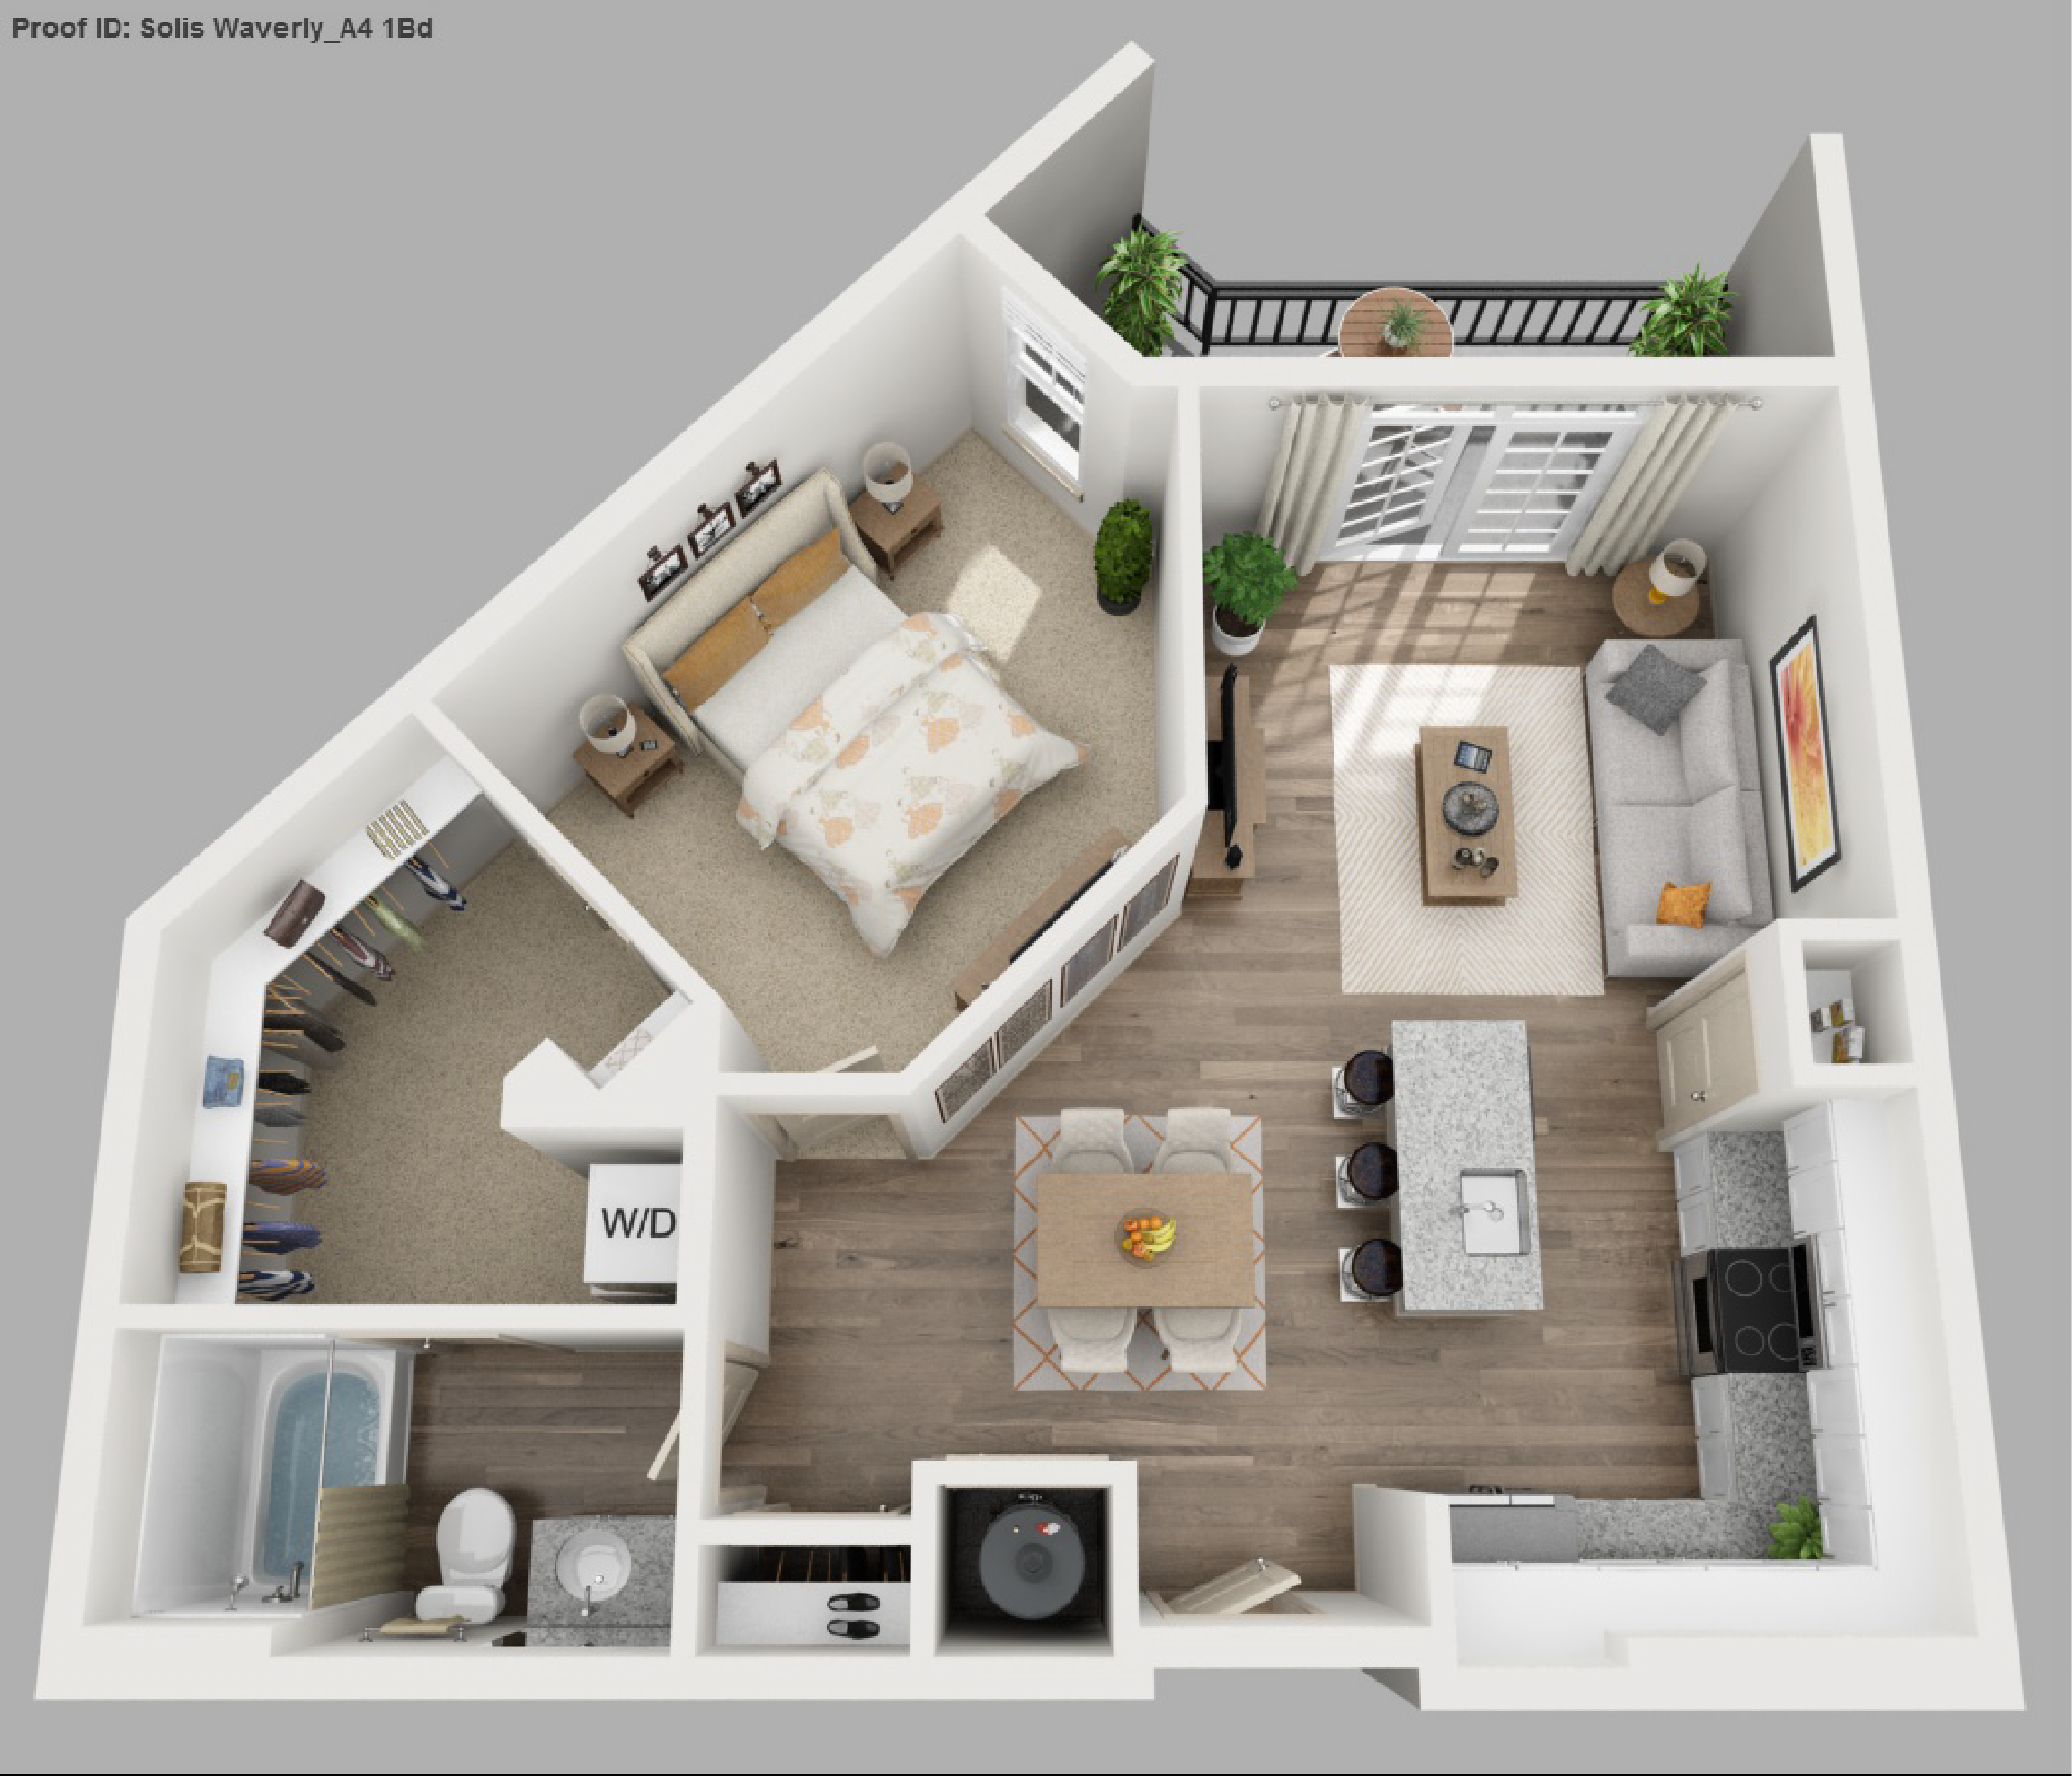 Solis apartments floorplans waverly for I bedroom apartment